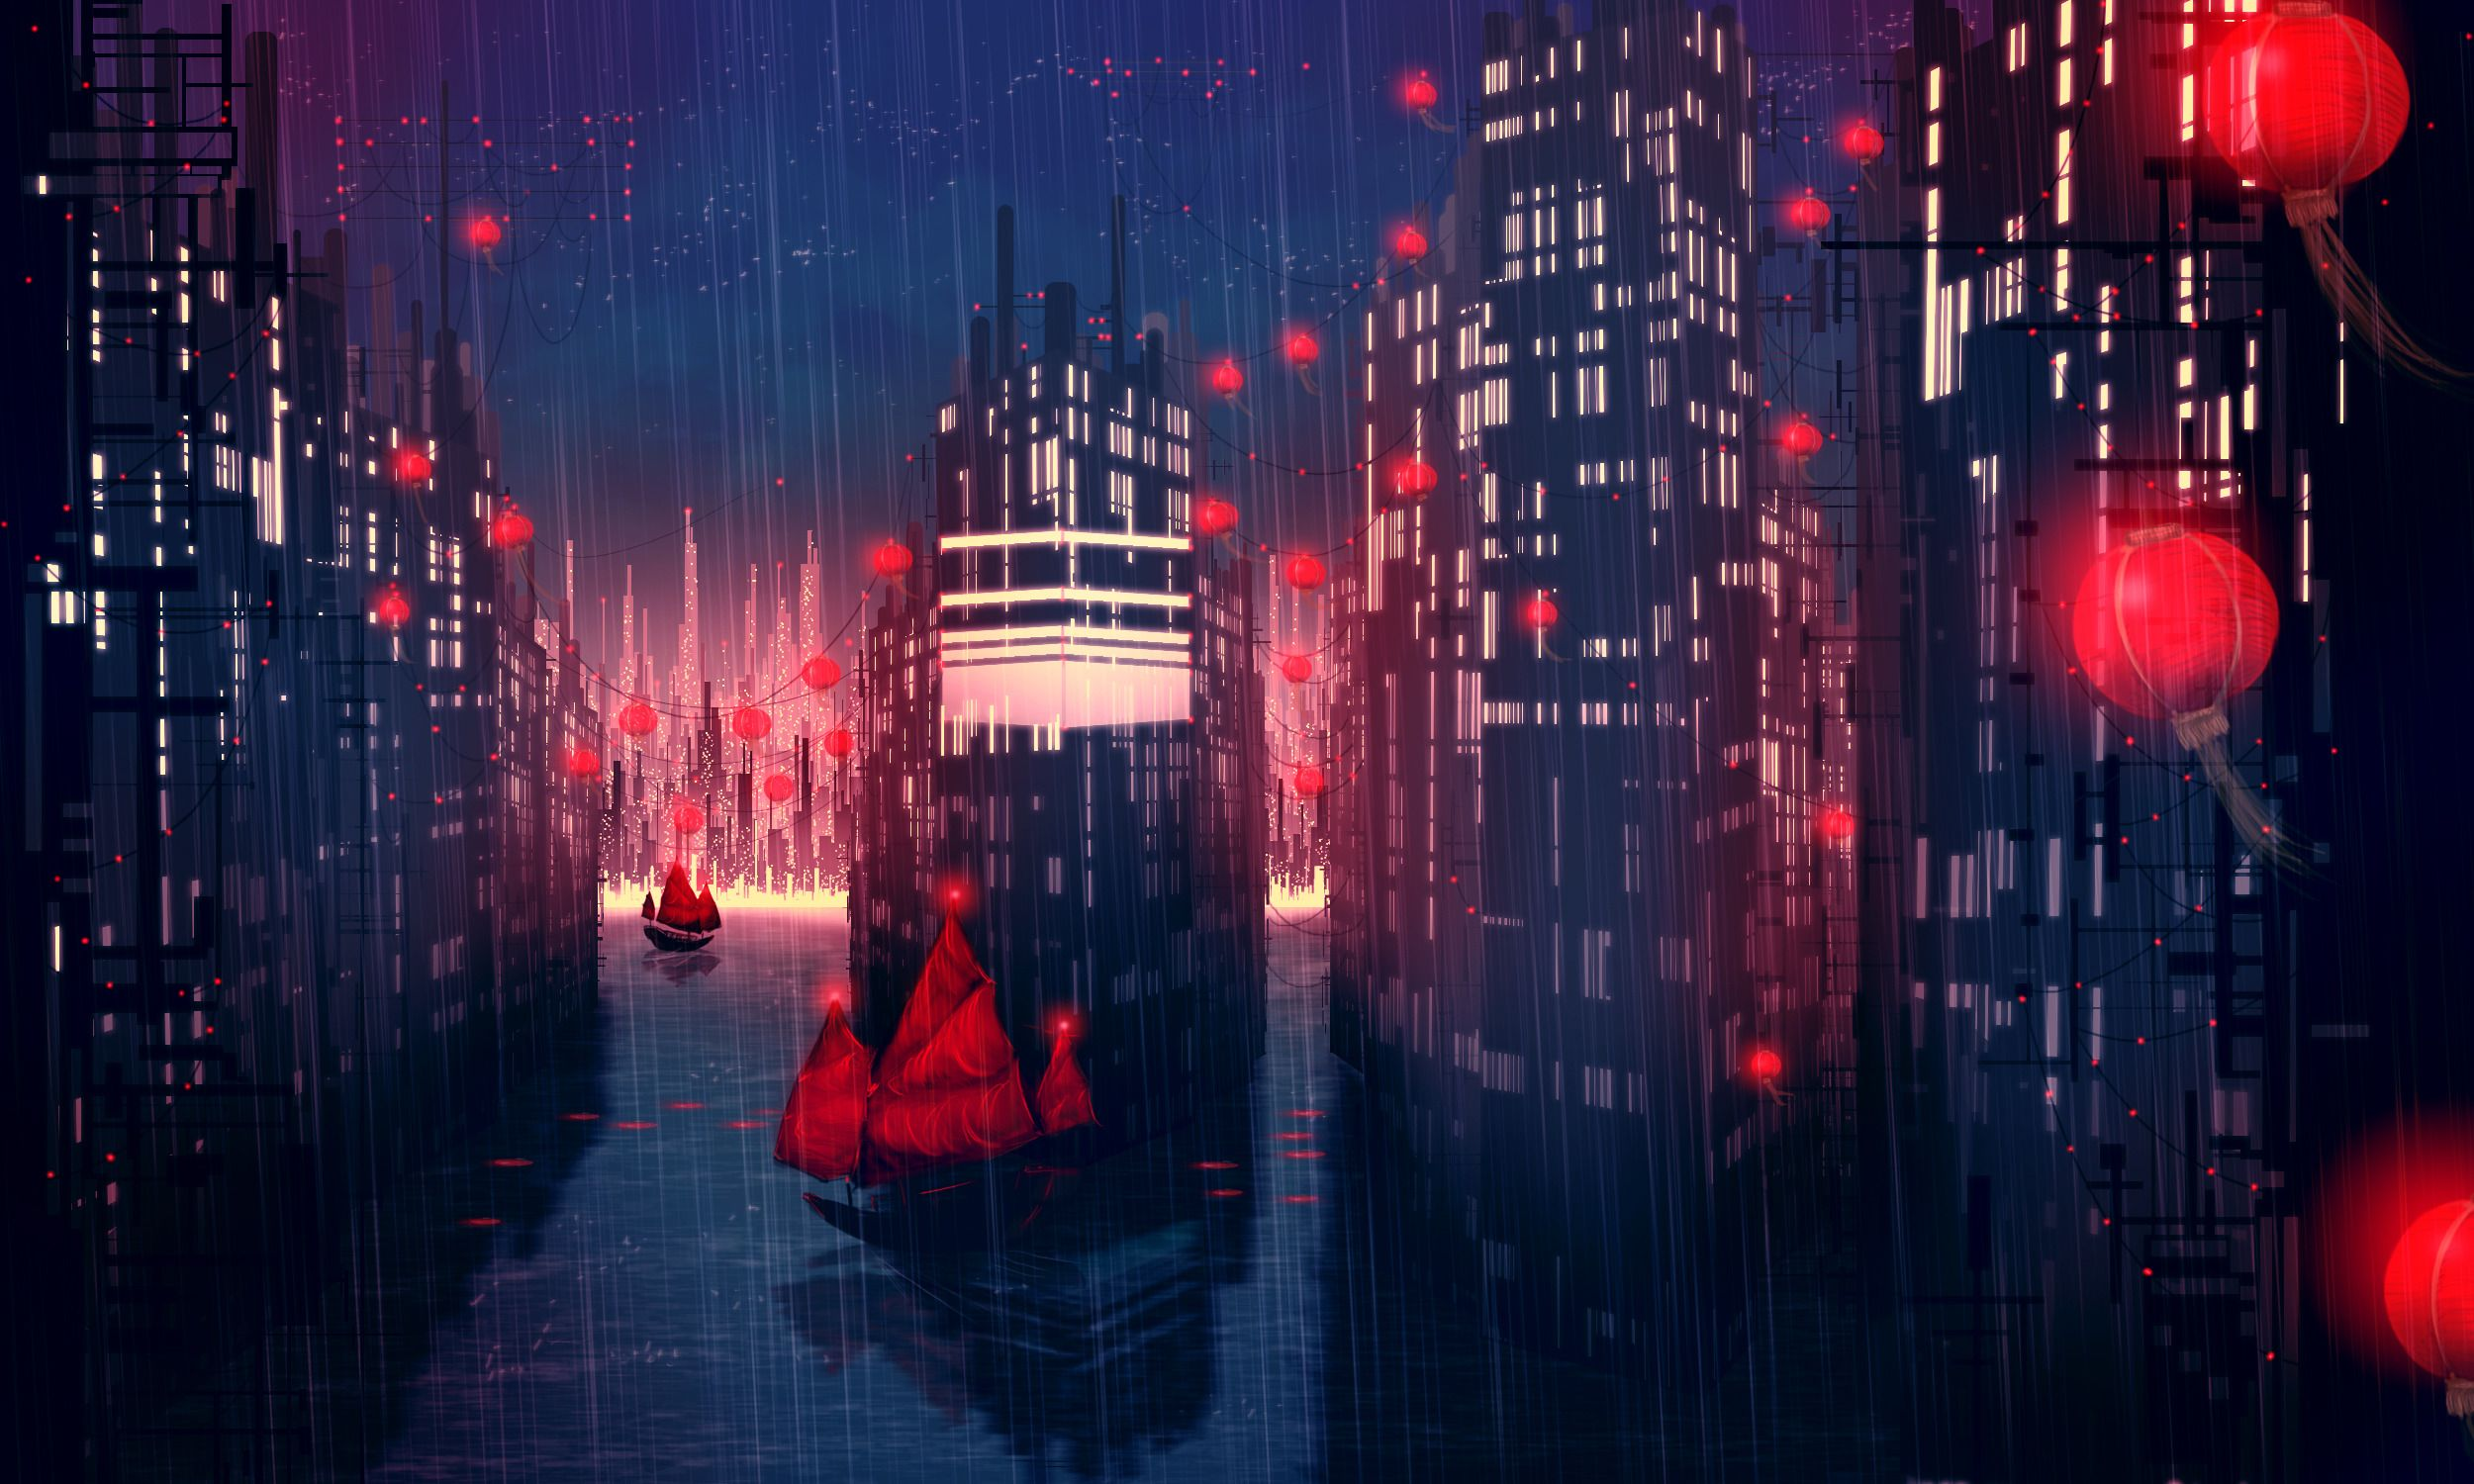 Anime Cityscape In Rain Wallpaper 2500x1500 Id 43372 With